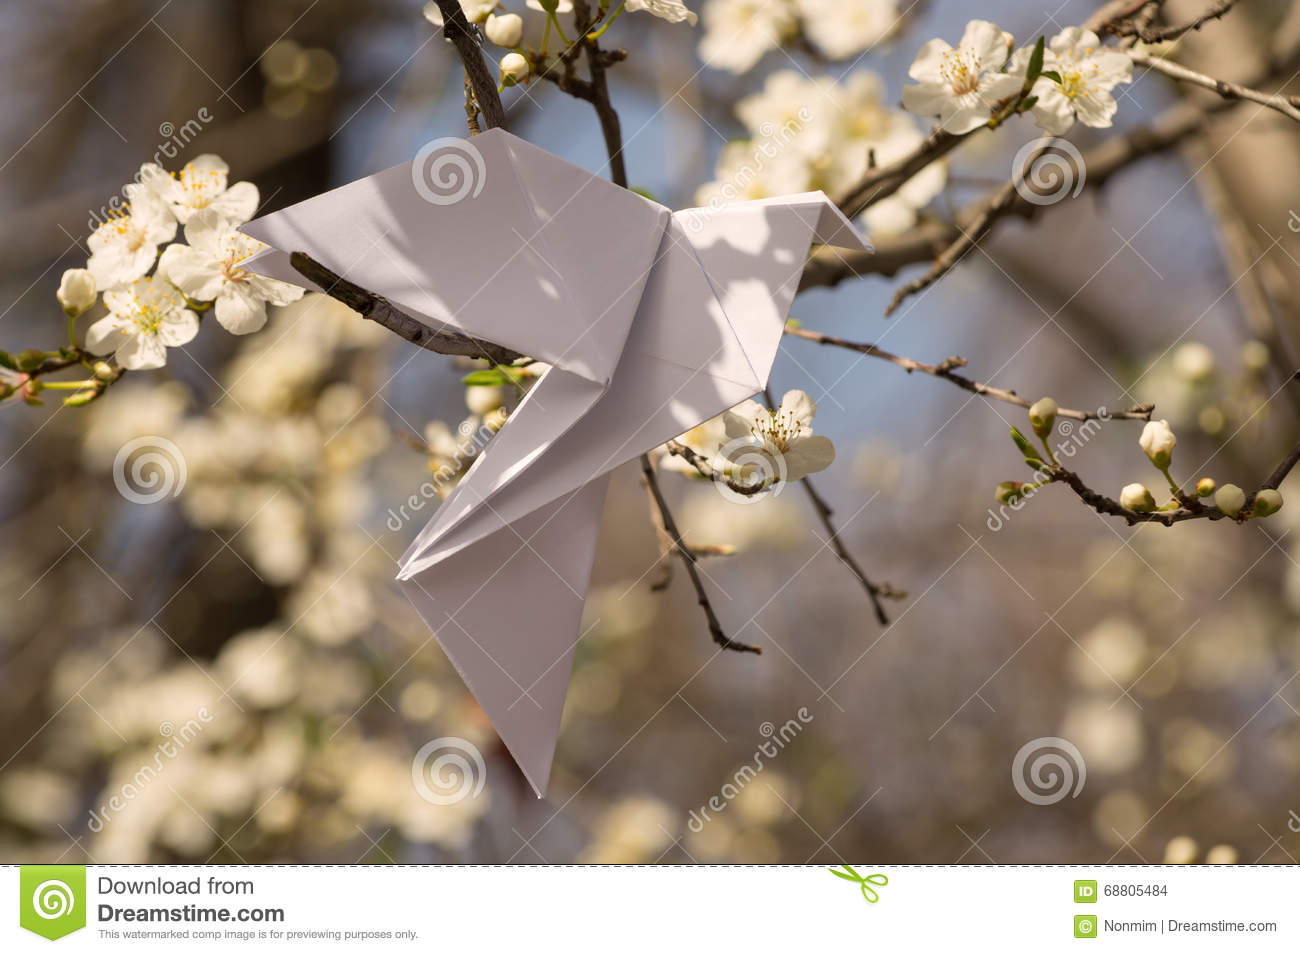 Origami Dove On Blooming Spring Tree Stock Photo - Image ... - photo#44